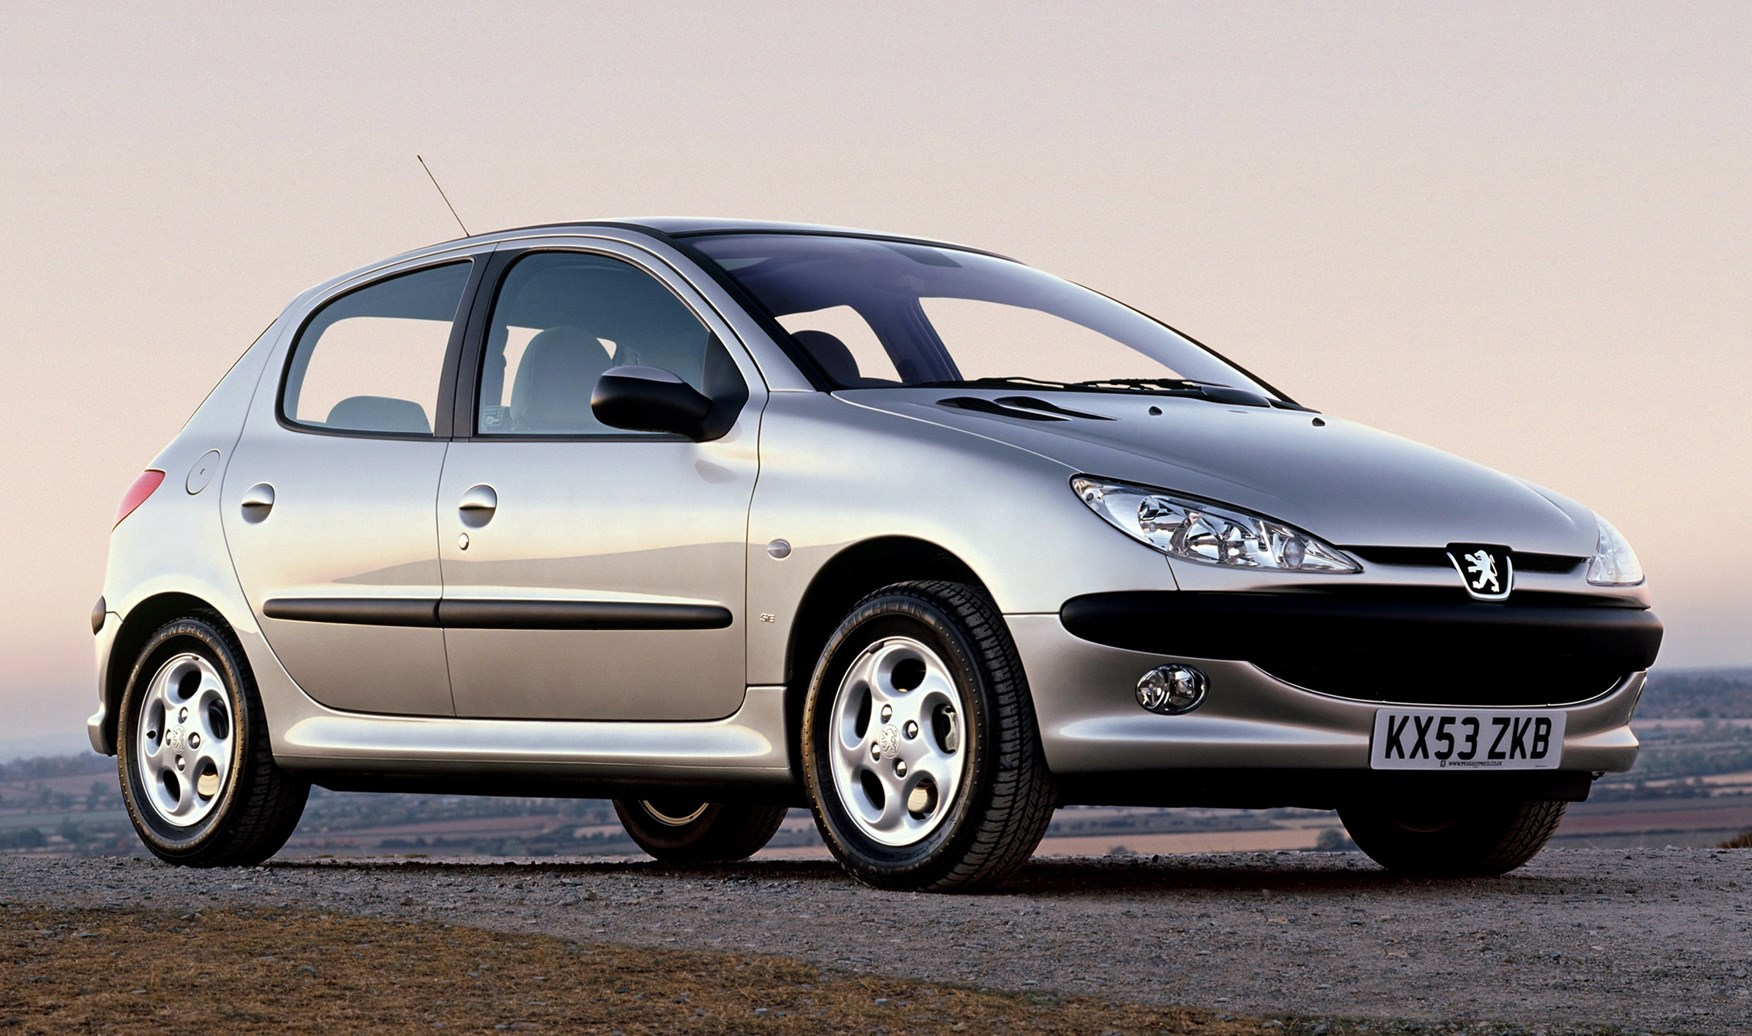 Peugeot 206 Hatchback (1998 - 2009) Features, Equipment and Accessories |  Parkers